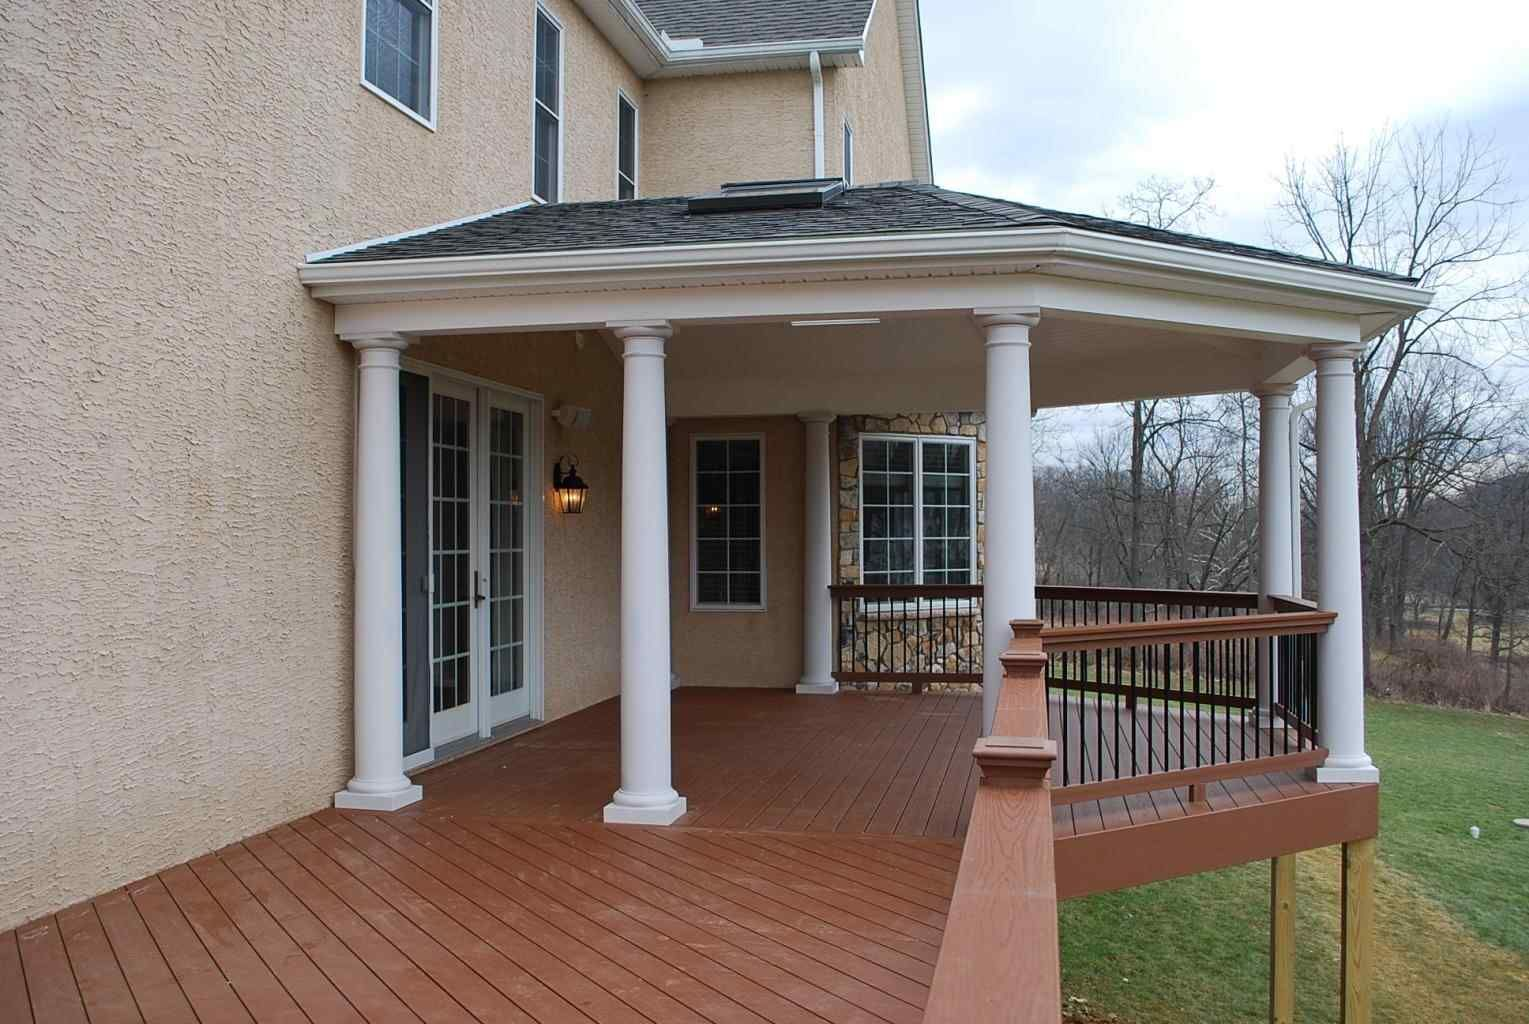 Roof Ideas For A Deck Home Roof Ideas Rooftop Design Deck Building Cost Decks And Porches